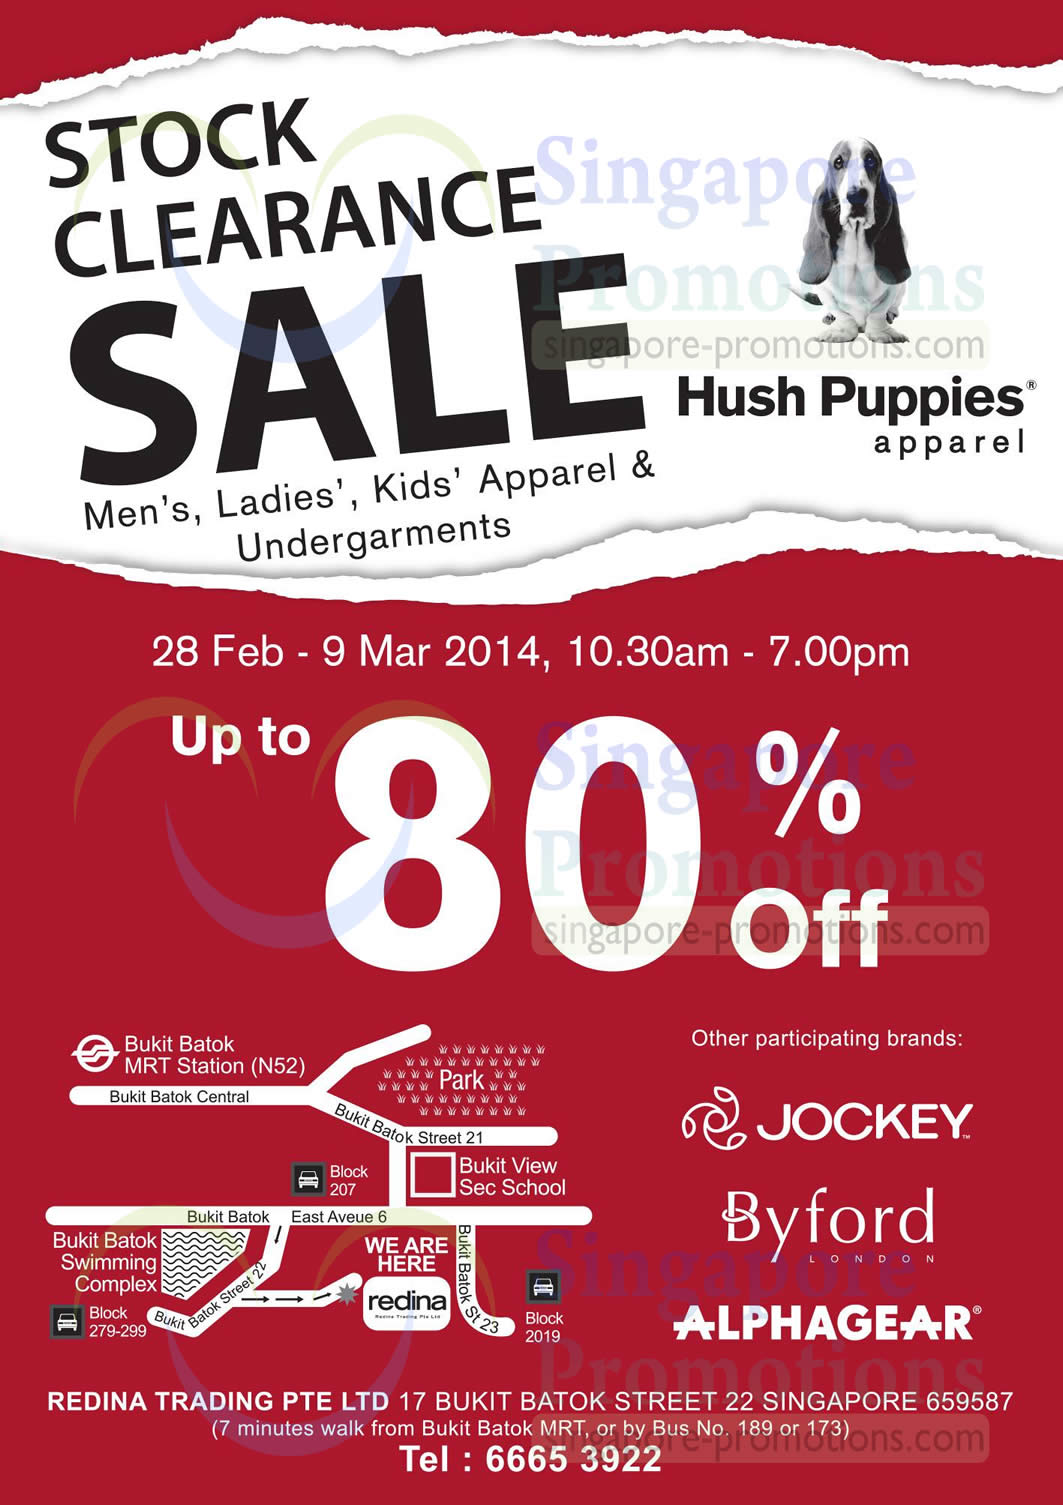 Stock Clearance Sale Details